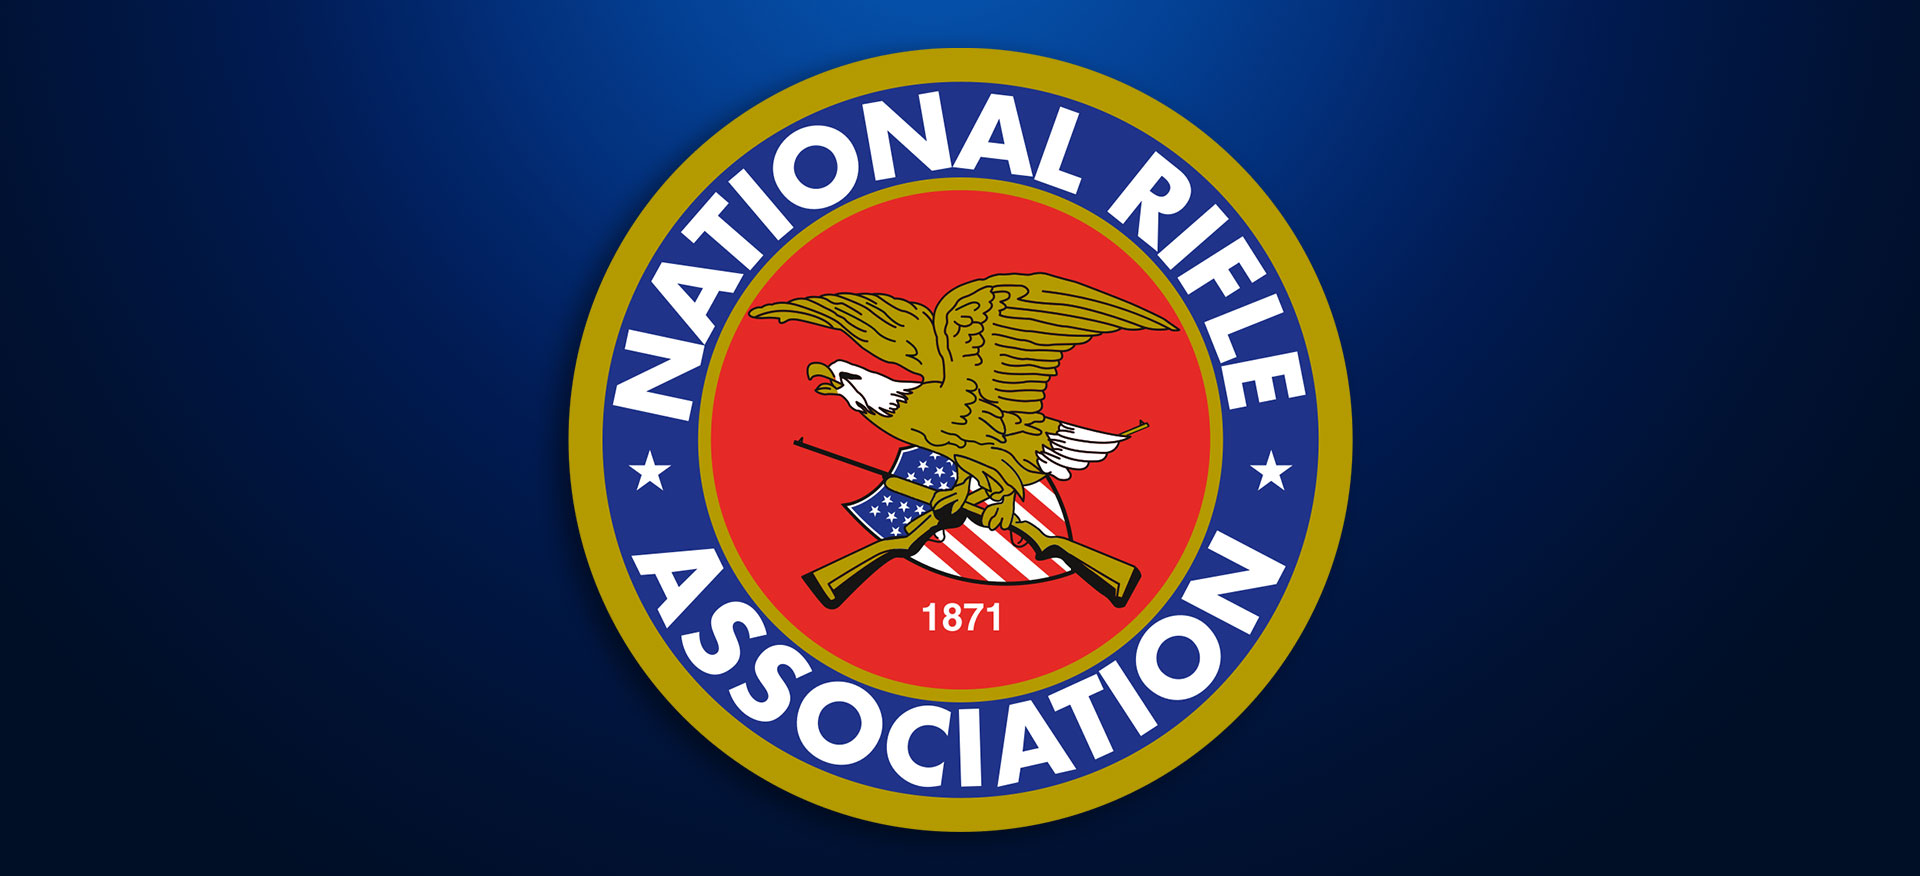 With A Friendly President And Congress, NRA Targets Media